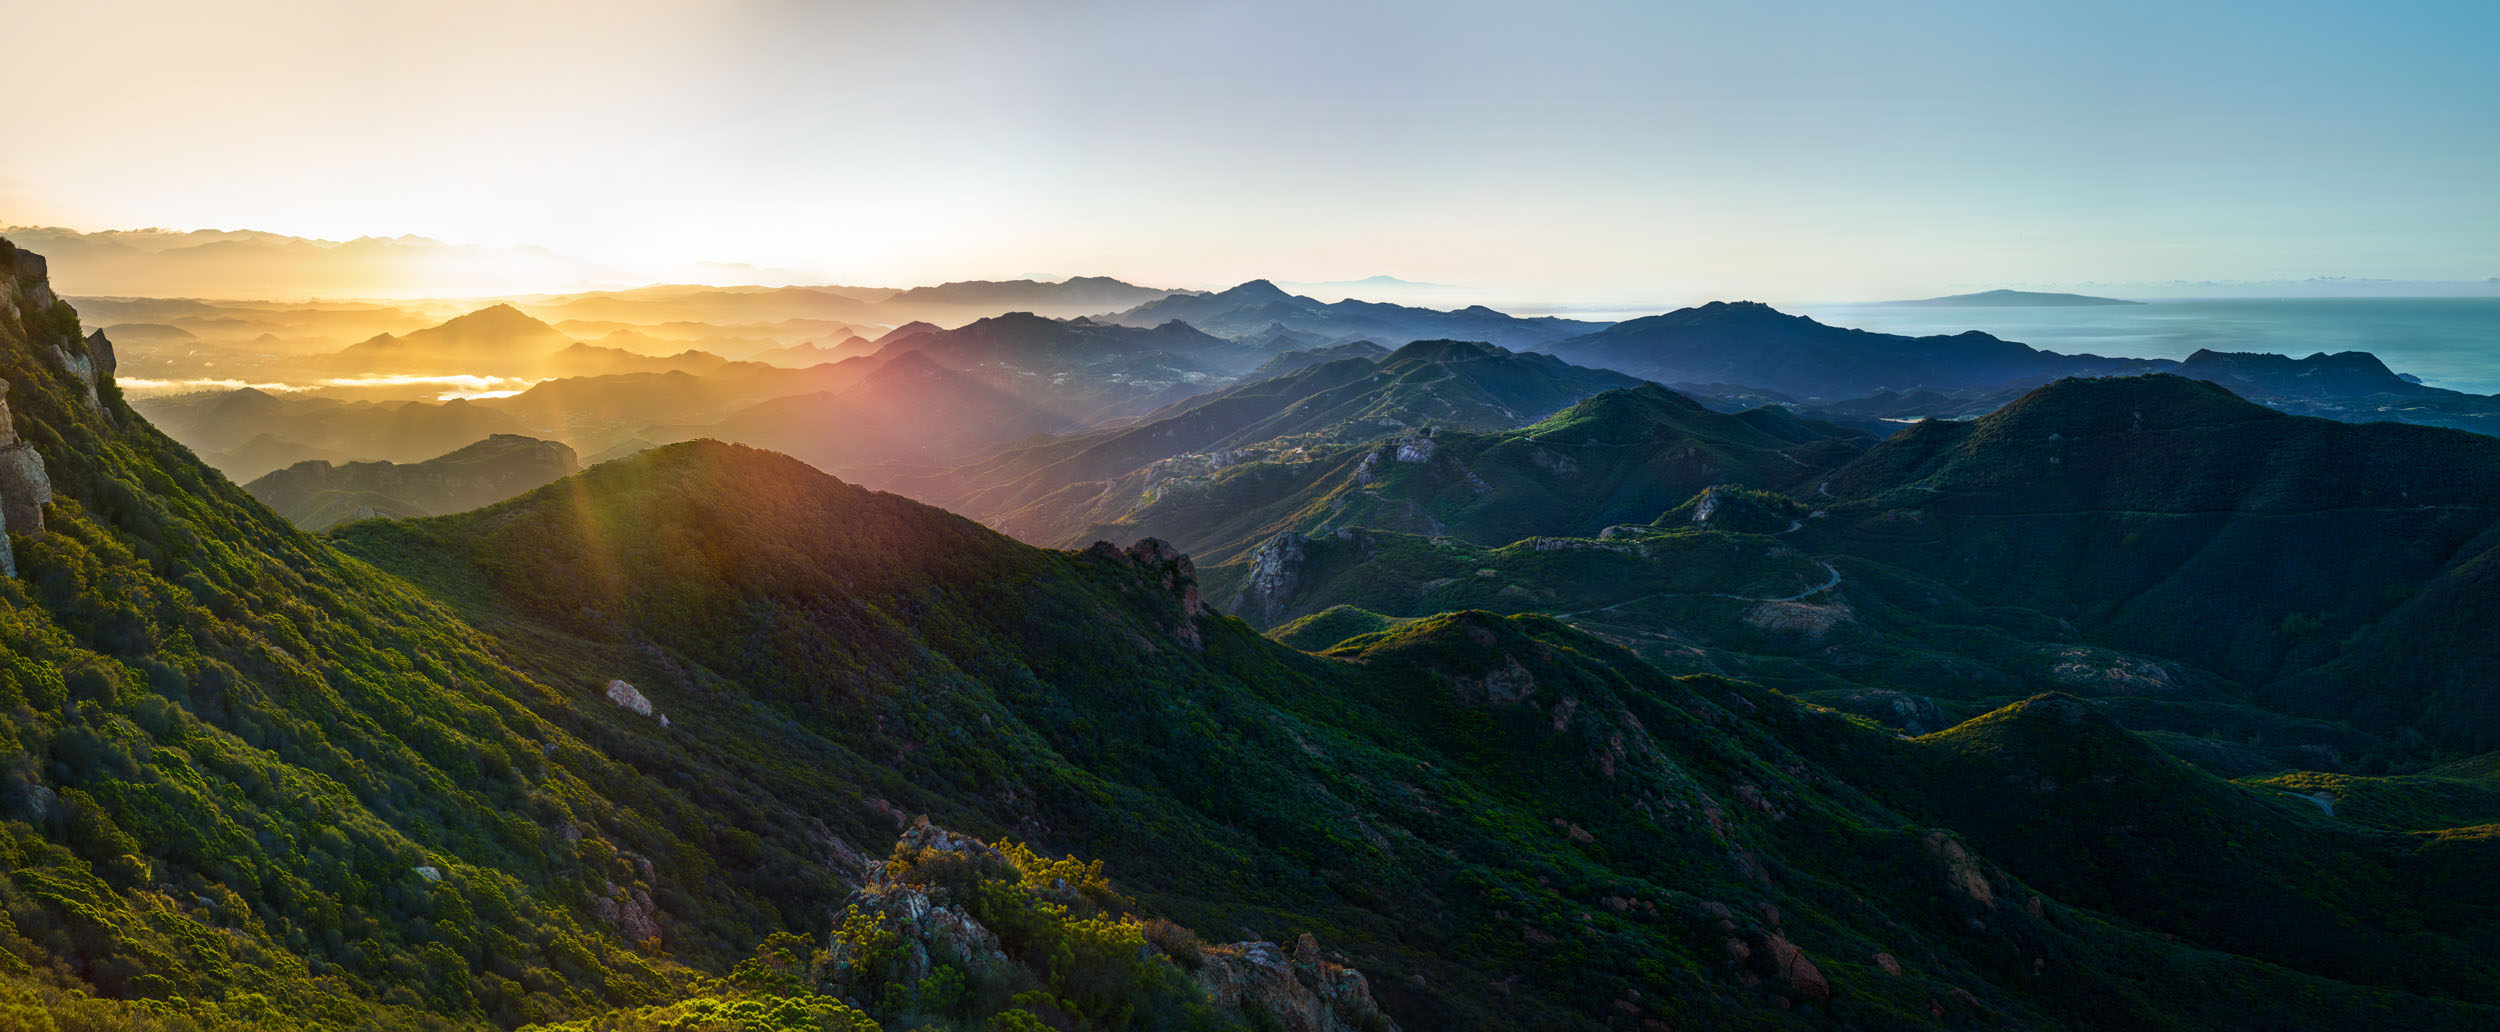 Sunrise over the Santa Monica Mountains, Los Angeles, California- REI Woodland Hills Store